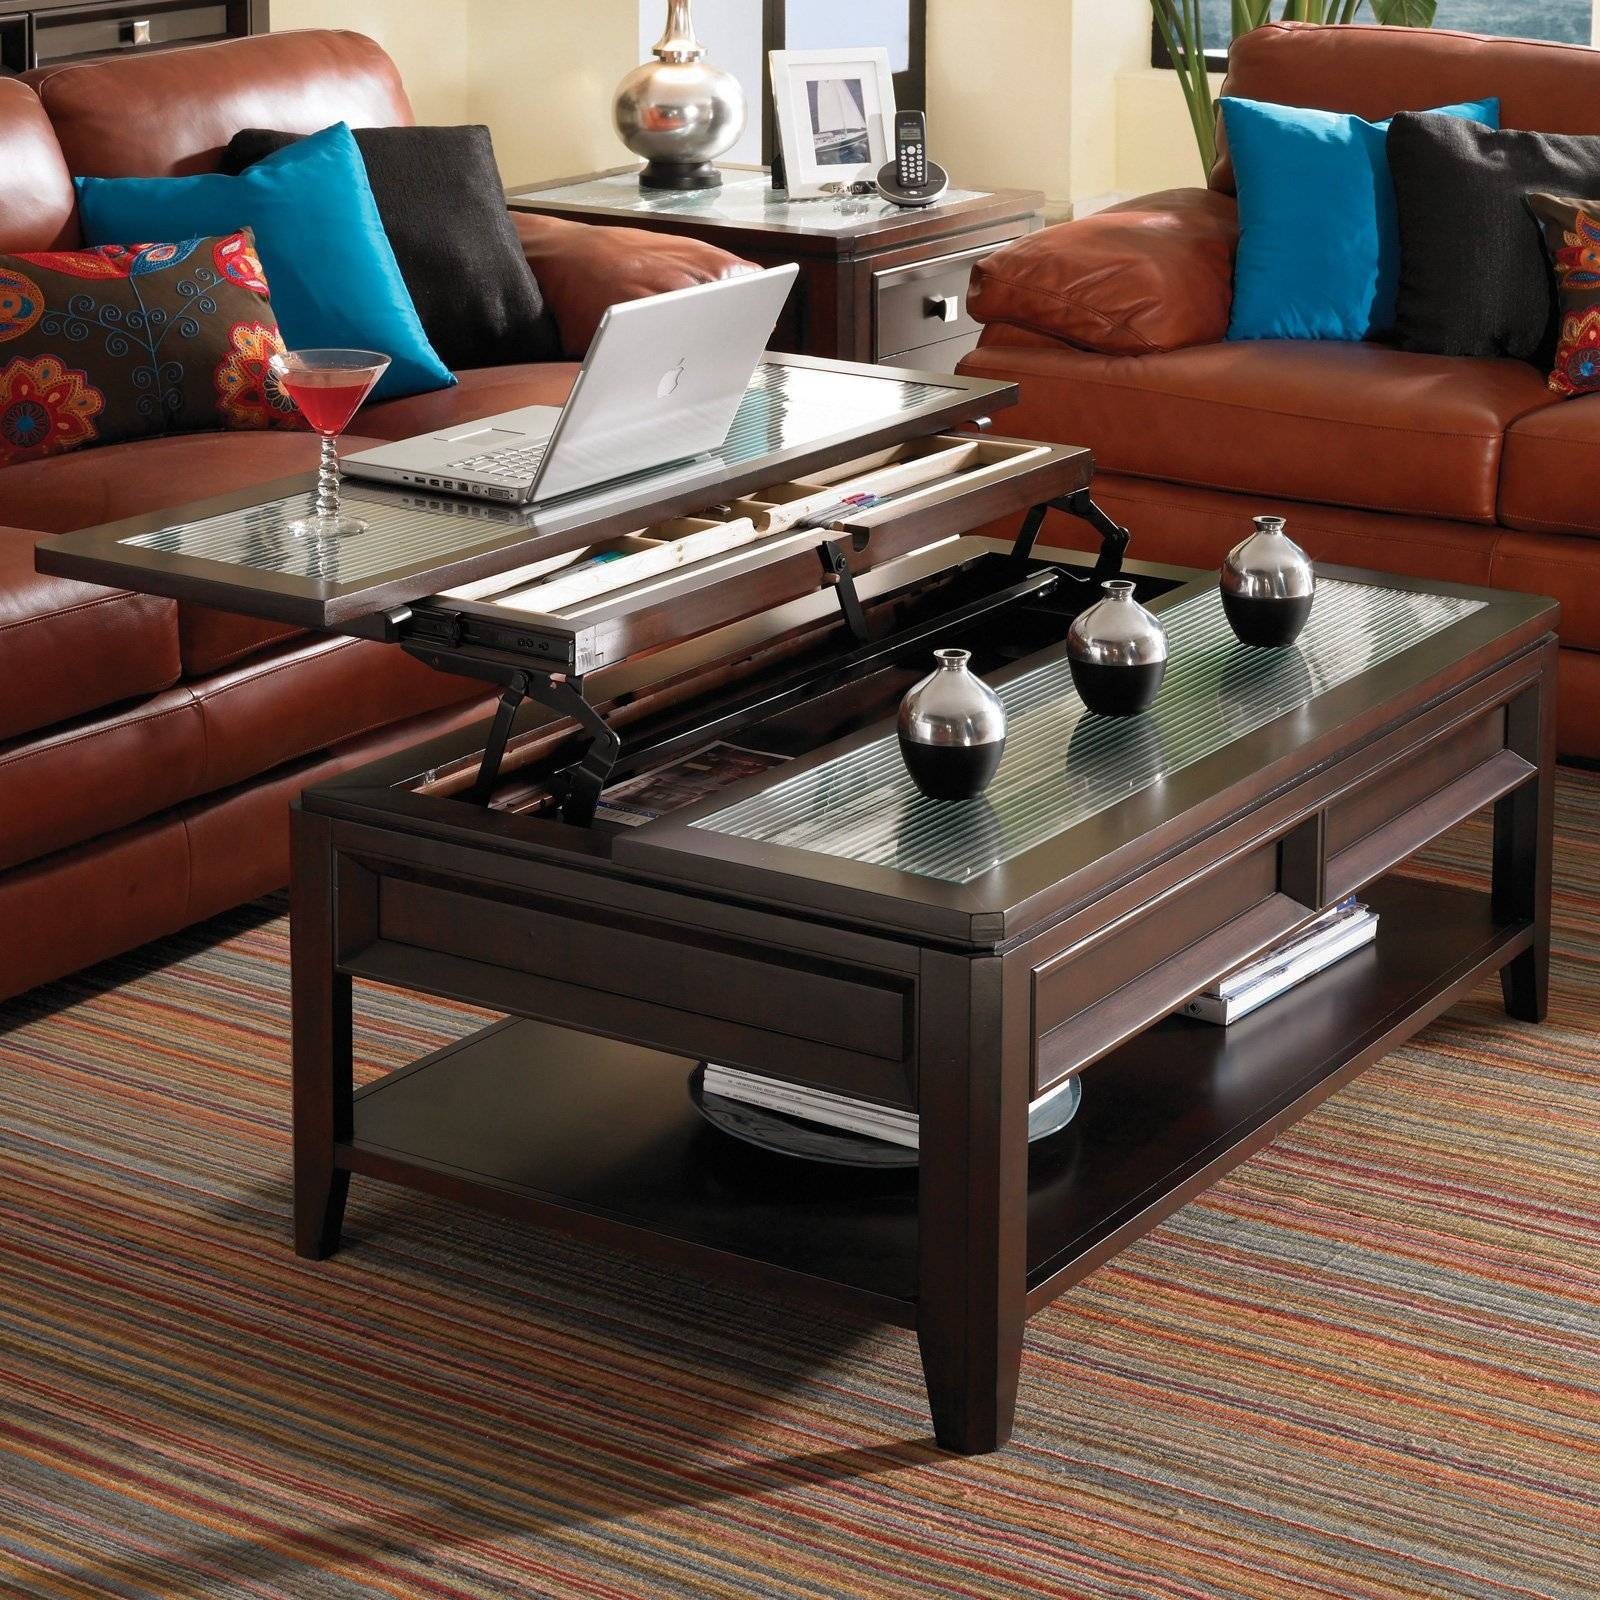 Coffee Table With Lift Top : Elegant Coffee Table With Lift Top pertaining to Coffee Tables With Rising Top (Image 6 of 30)